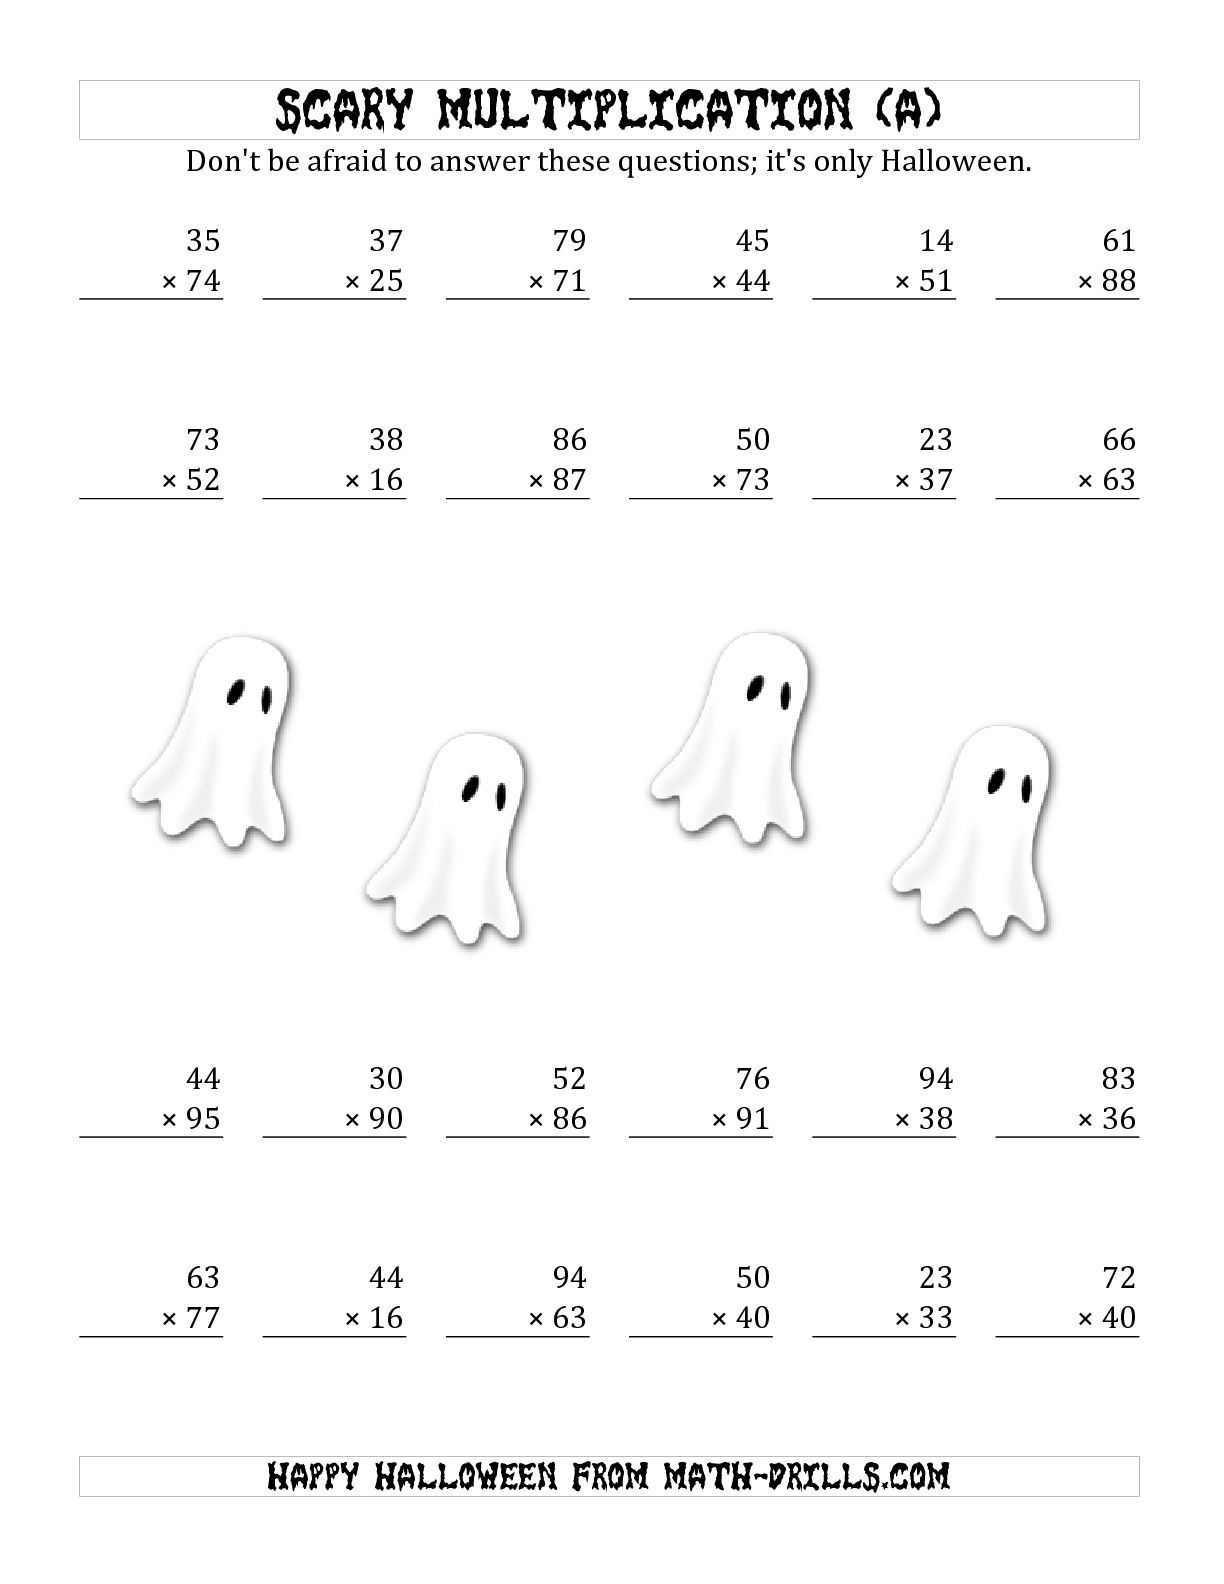 The Scary Multiplication (2-Digit2-Digit) (A) Math